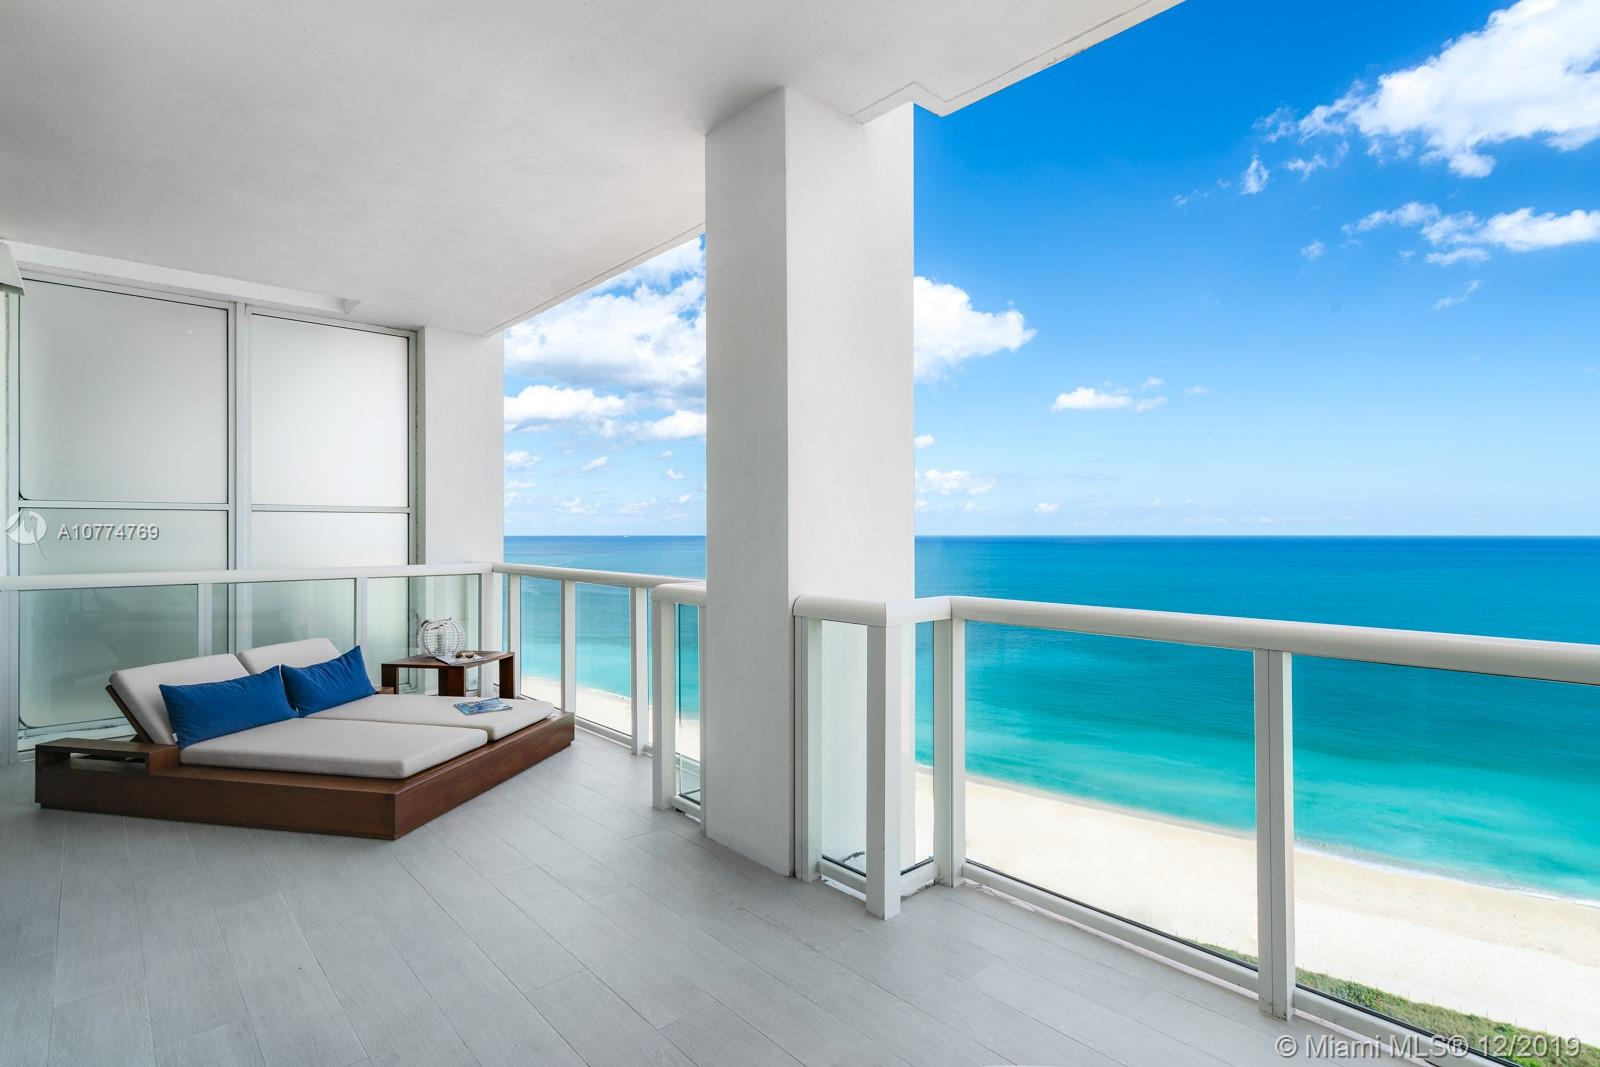 50 S Pointe Dr, Unit #2502 Luxury Real Estate